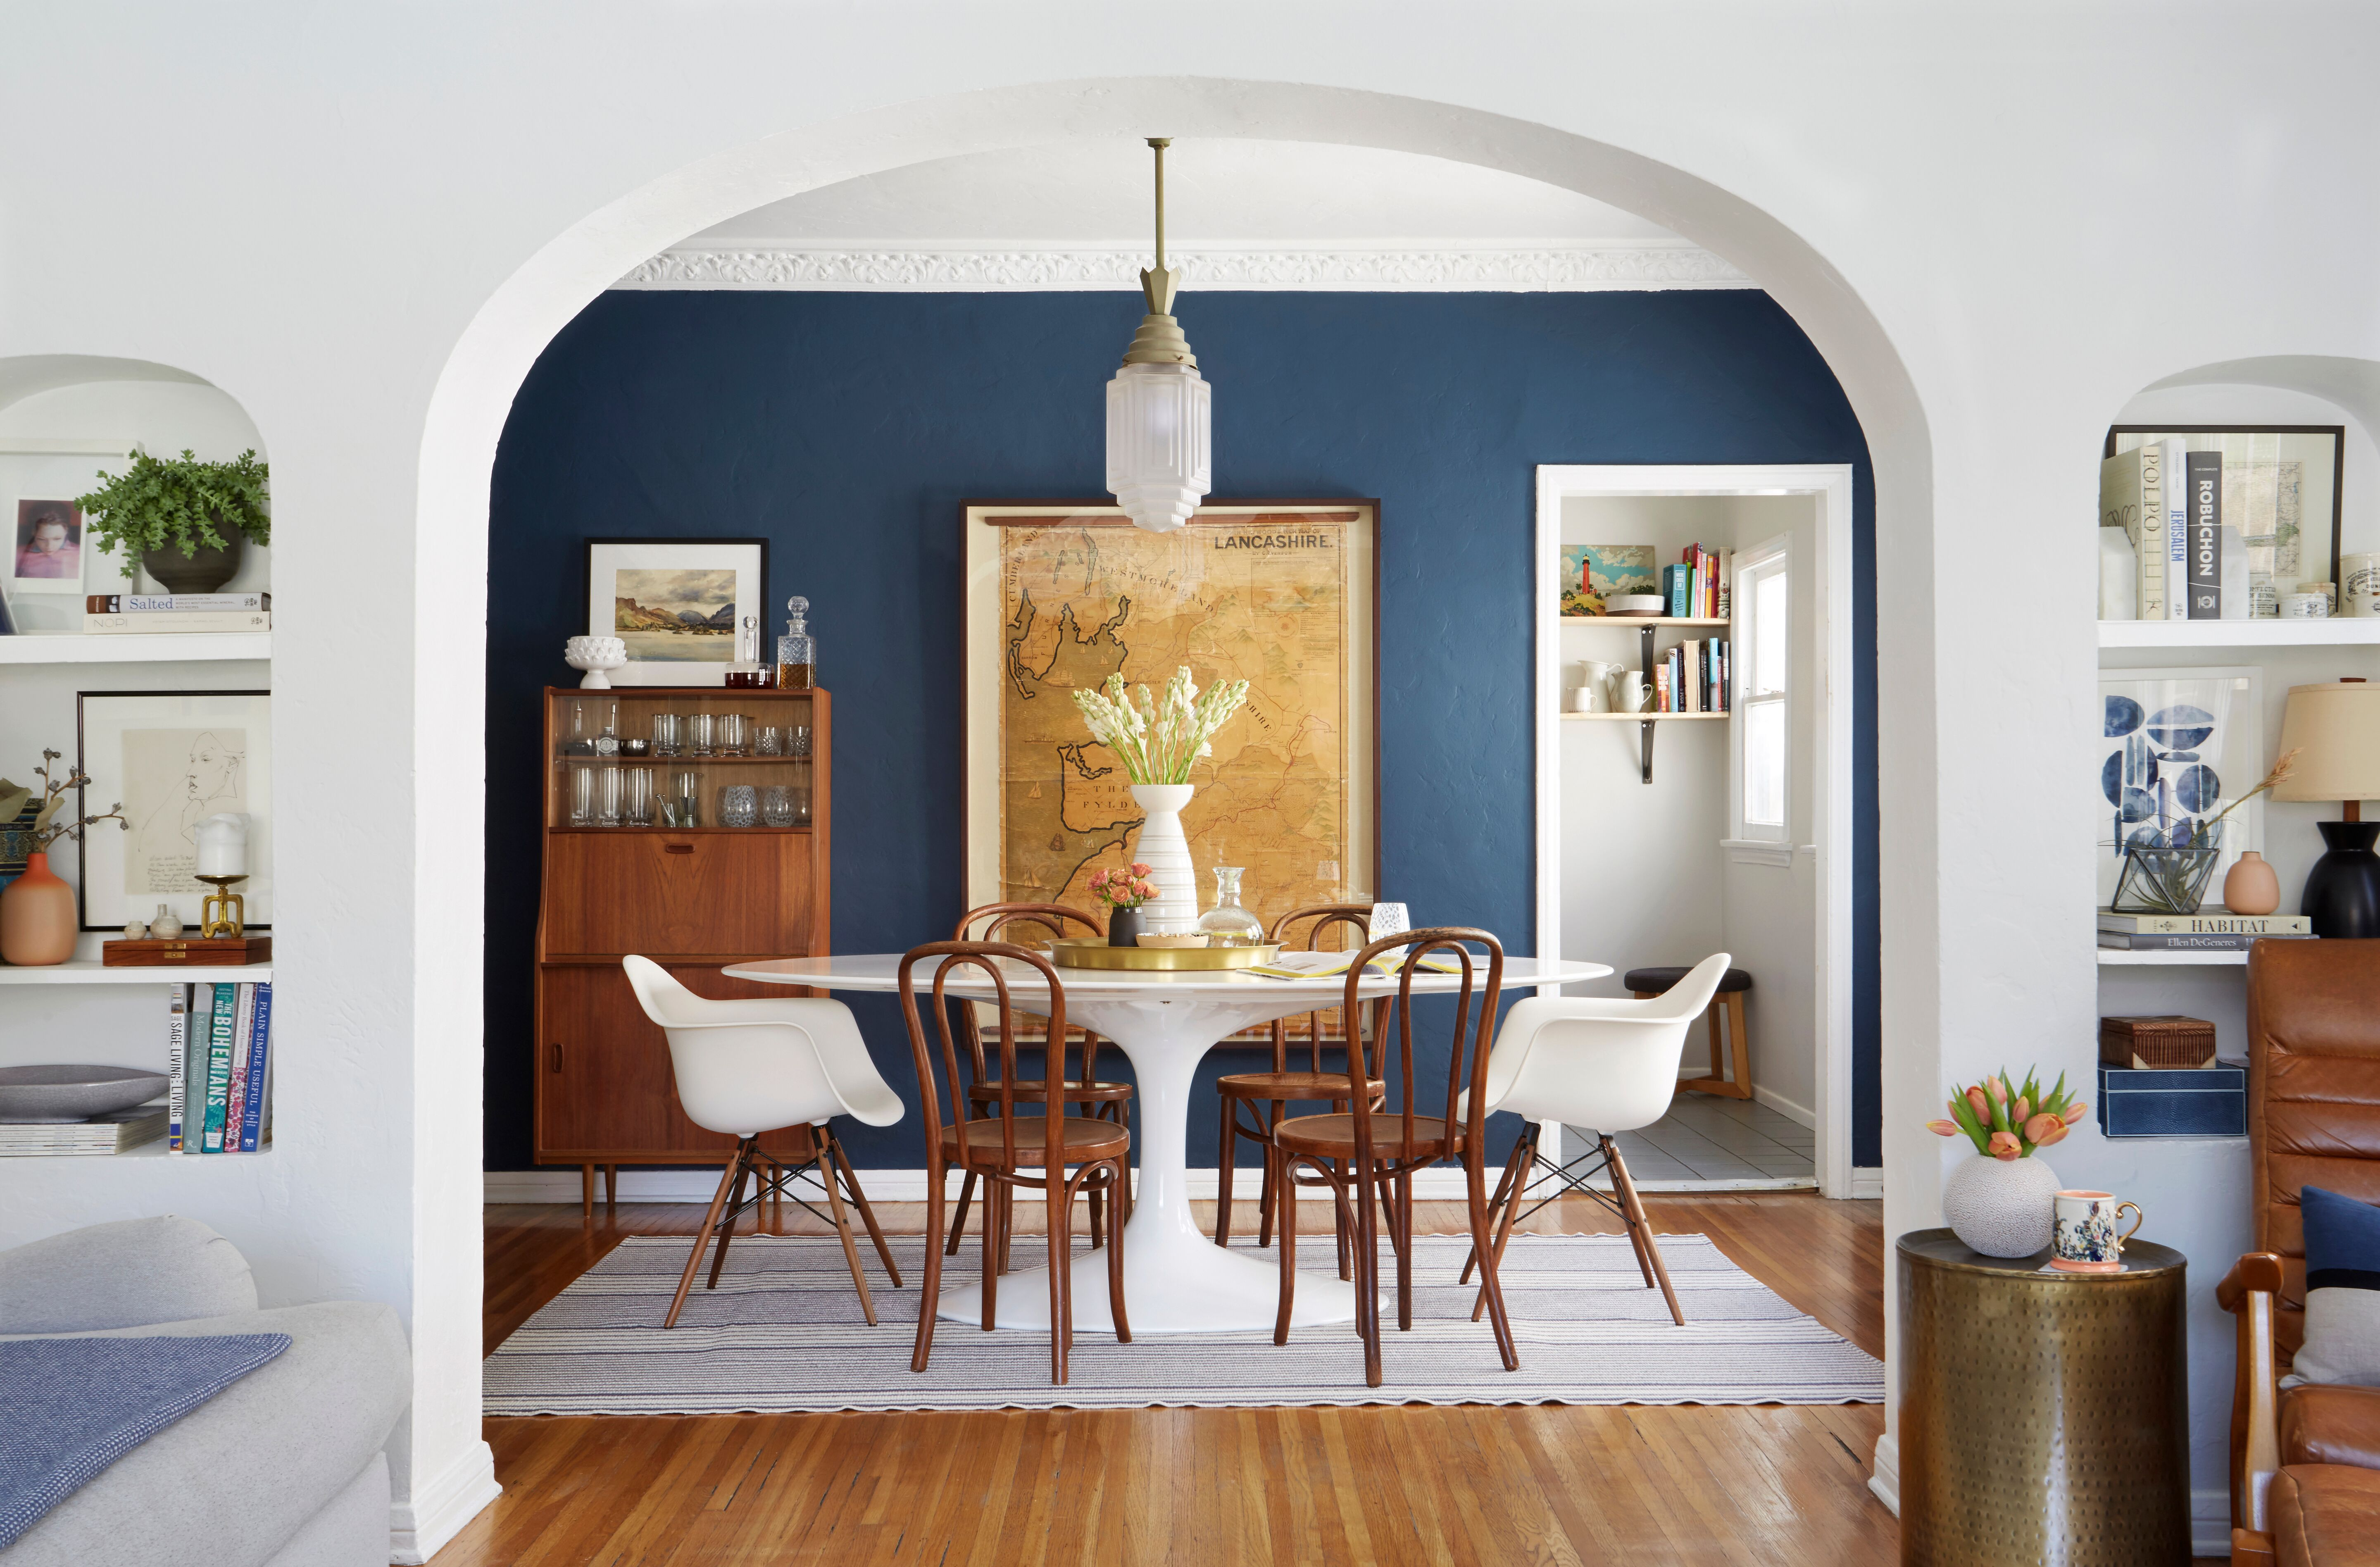 New Colors For Home Decorating from www.mydomaine.com